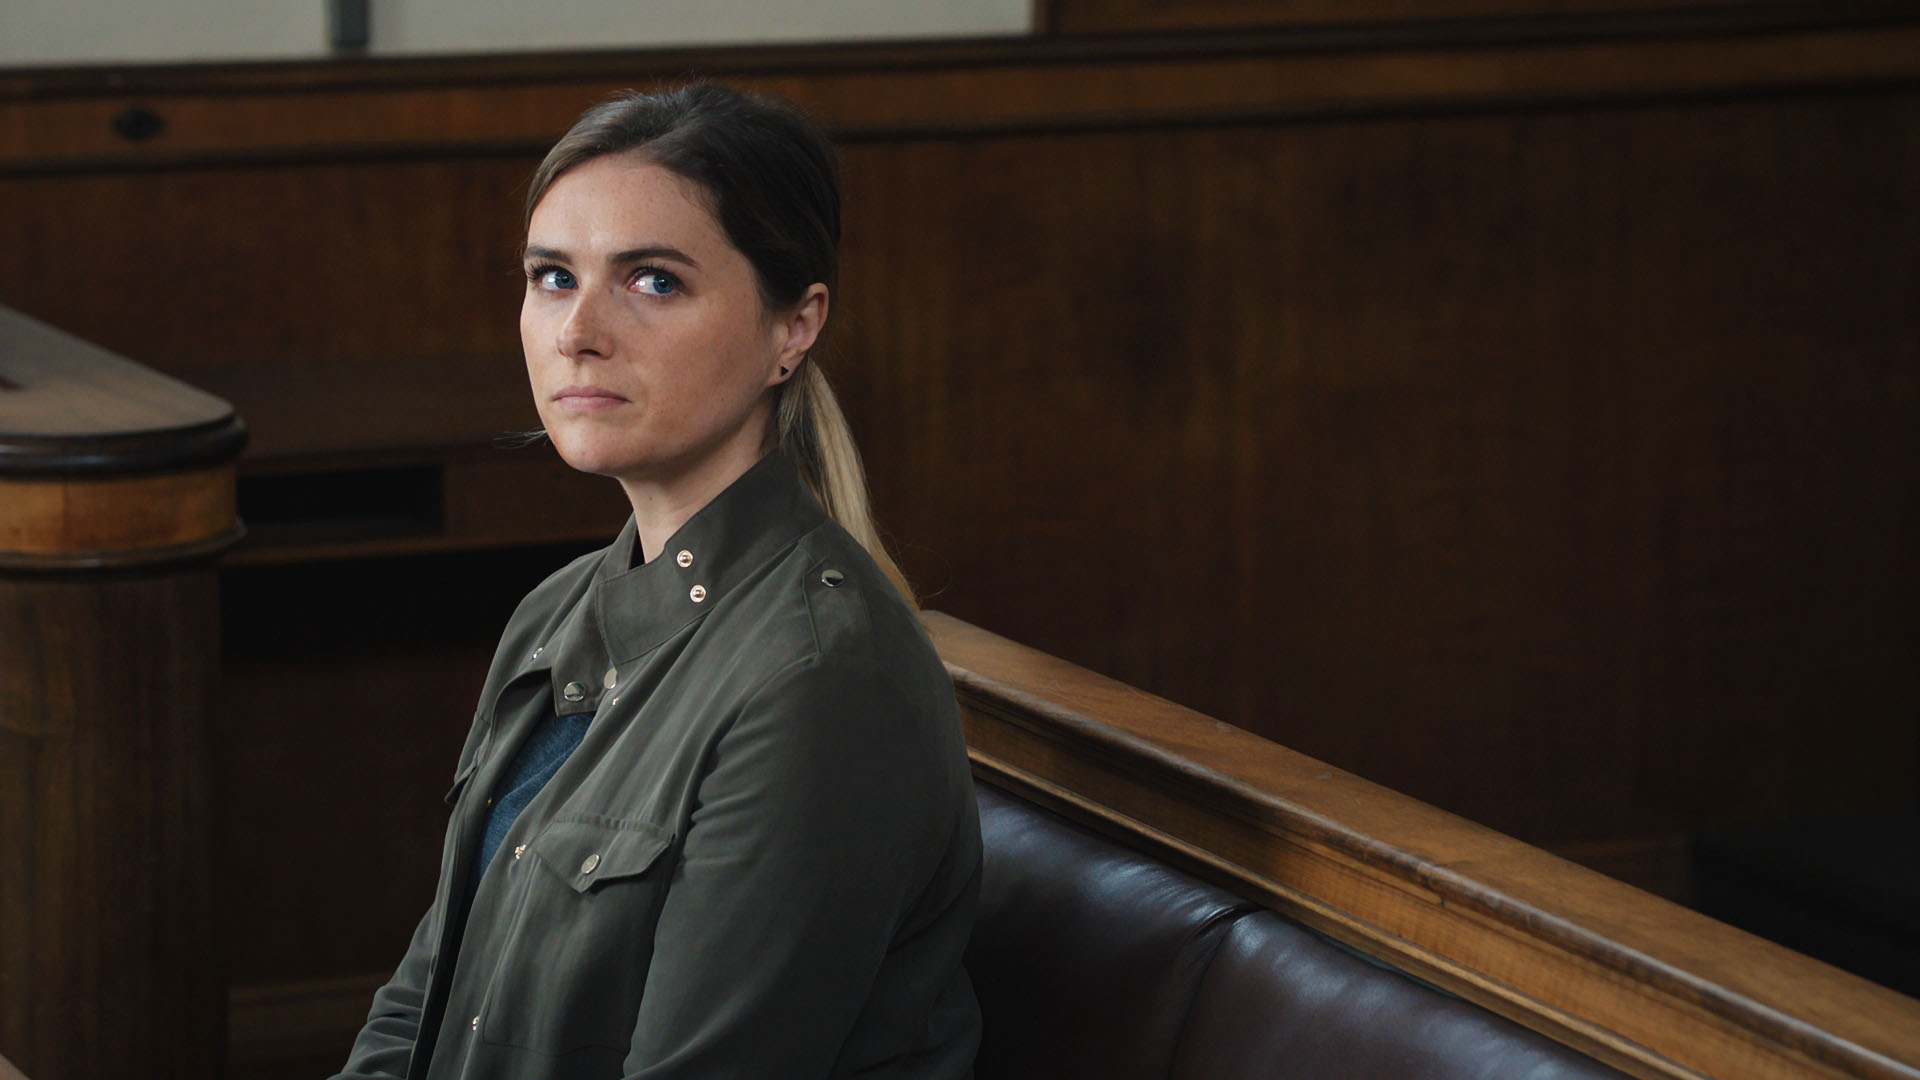 Casualty review with spoilers: Alicia in at the deep end